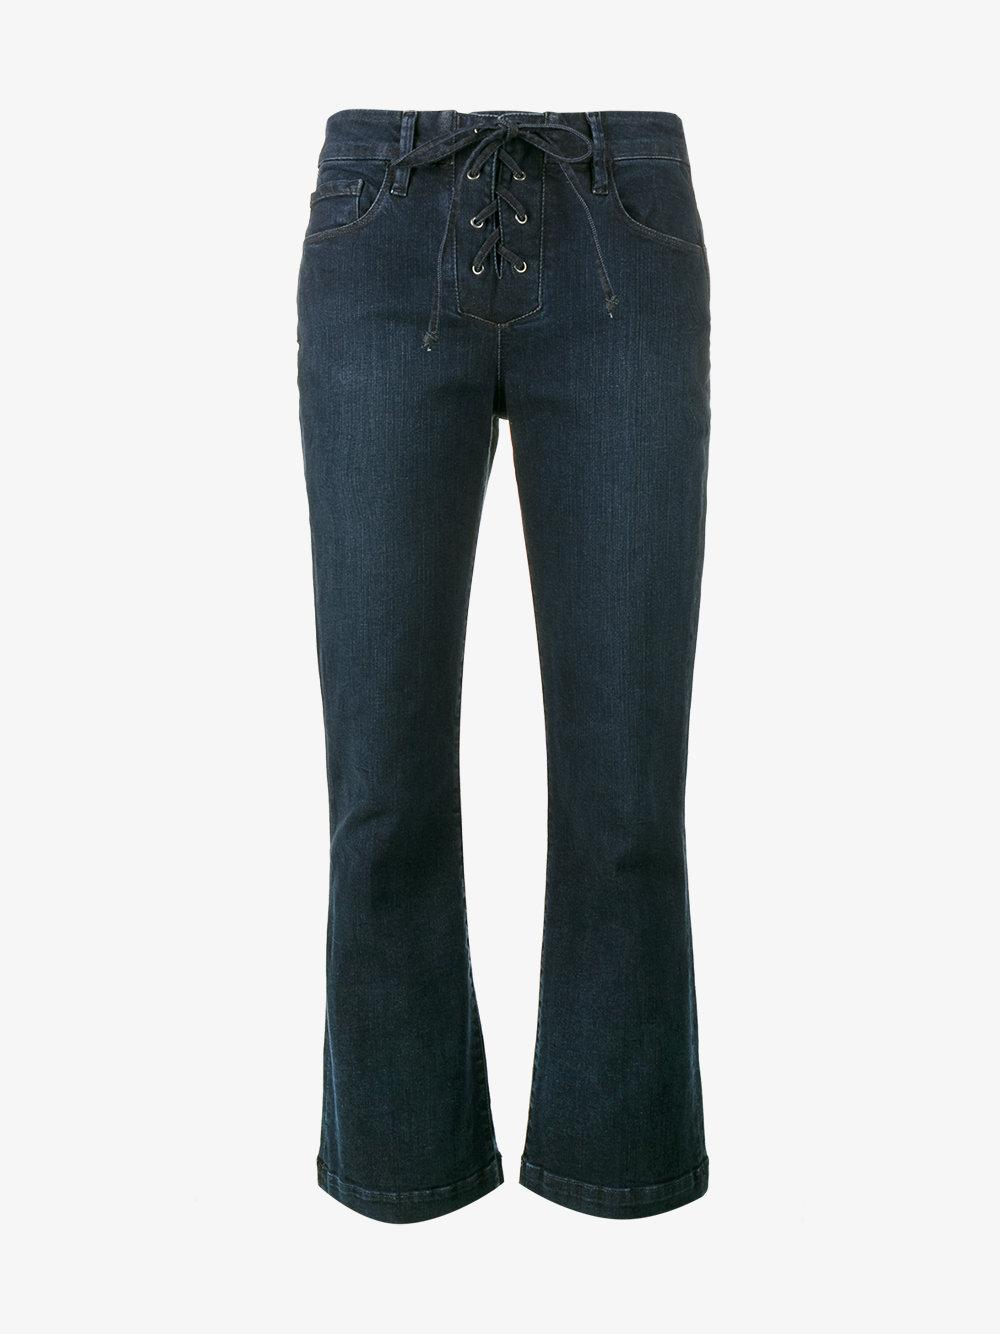 FRAME Denim Le Crop Mini Boot Lace-up Jeans in Blue